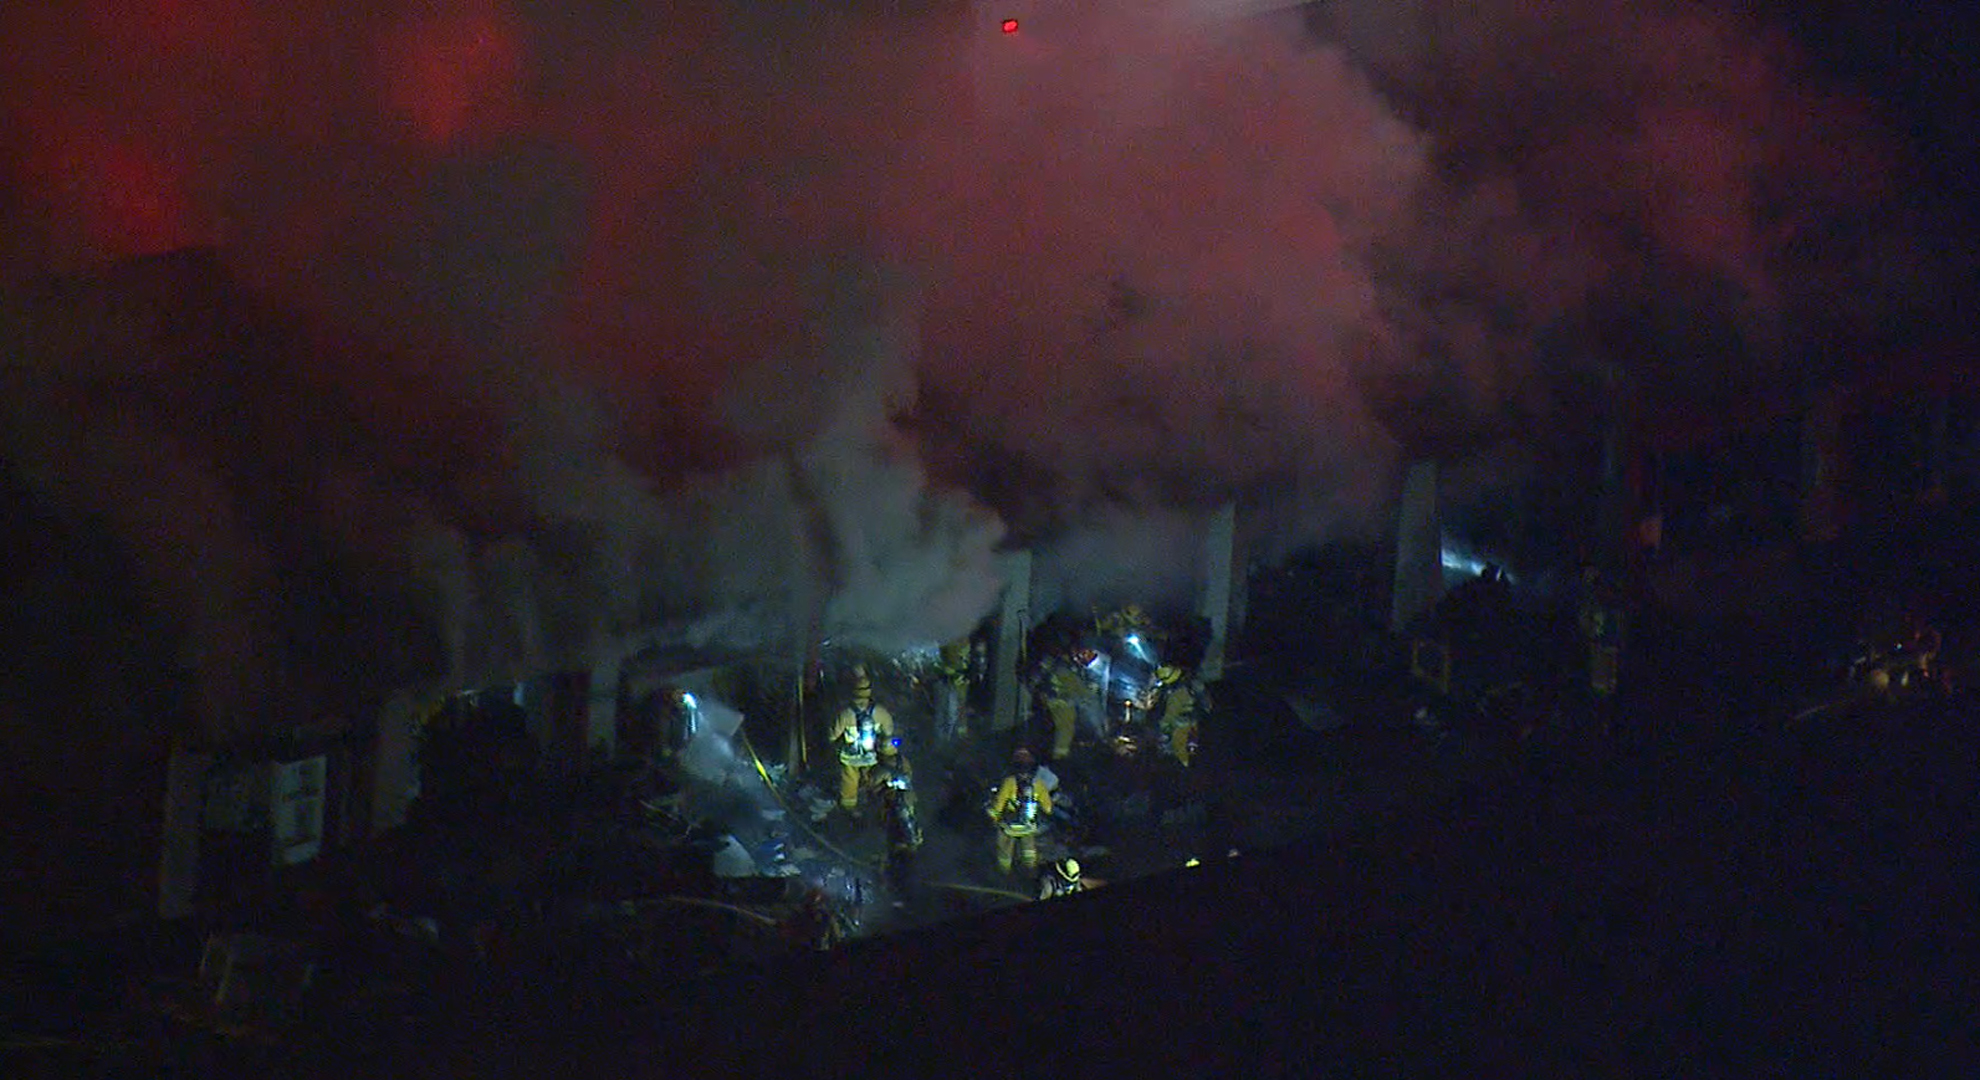 Crews work to put out a blaze that erupted at a storage facility in Valencia on Jan. 7, 2018. (Credit: KTLA)